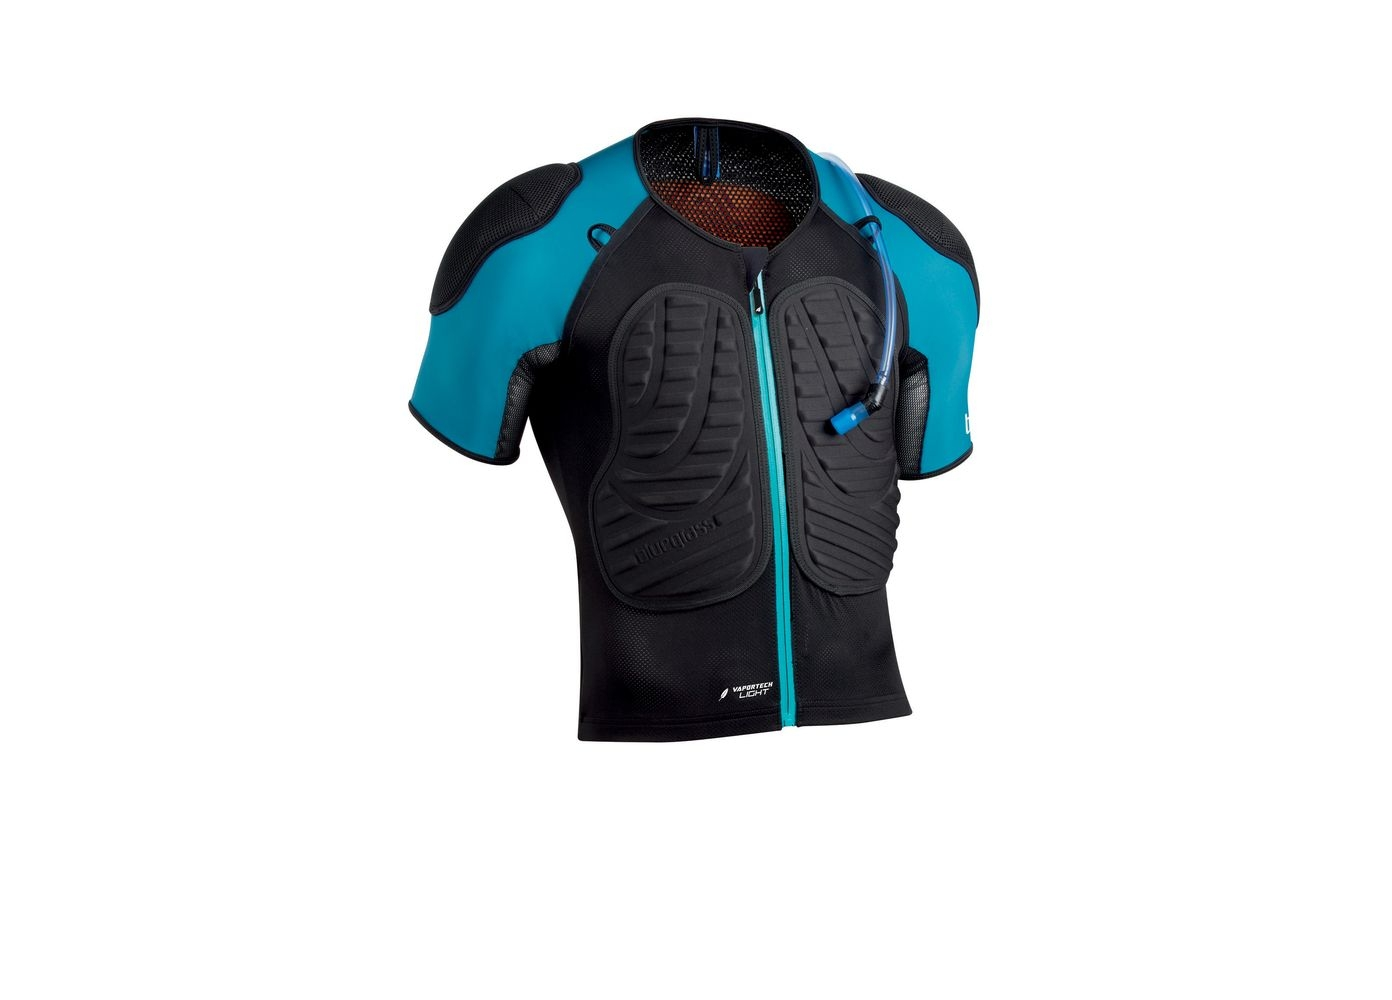 Gilet de protection Bluegrass Tuatara IDRO D3O comp. poche hydratation - M